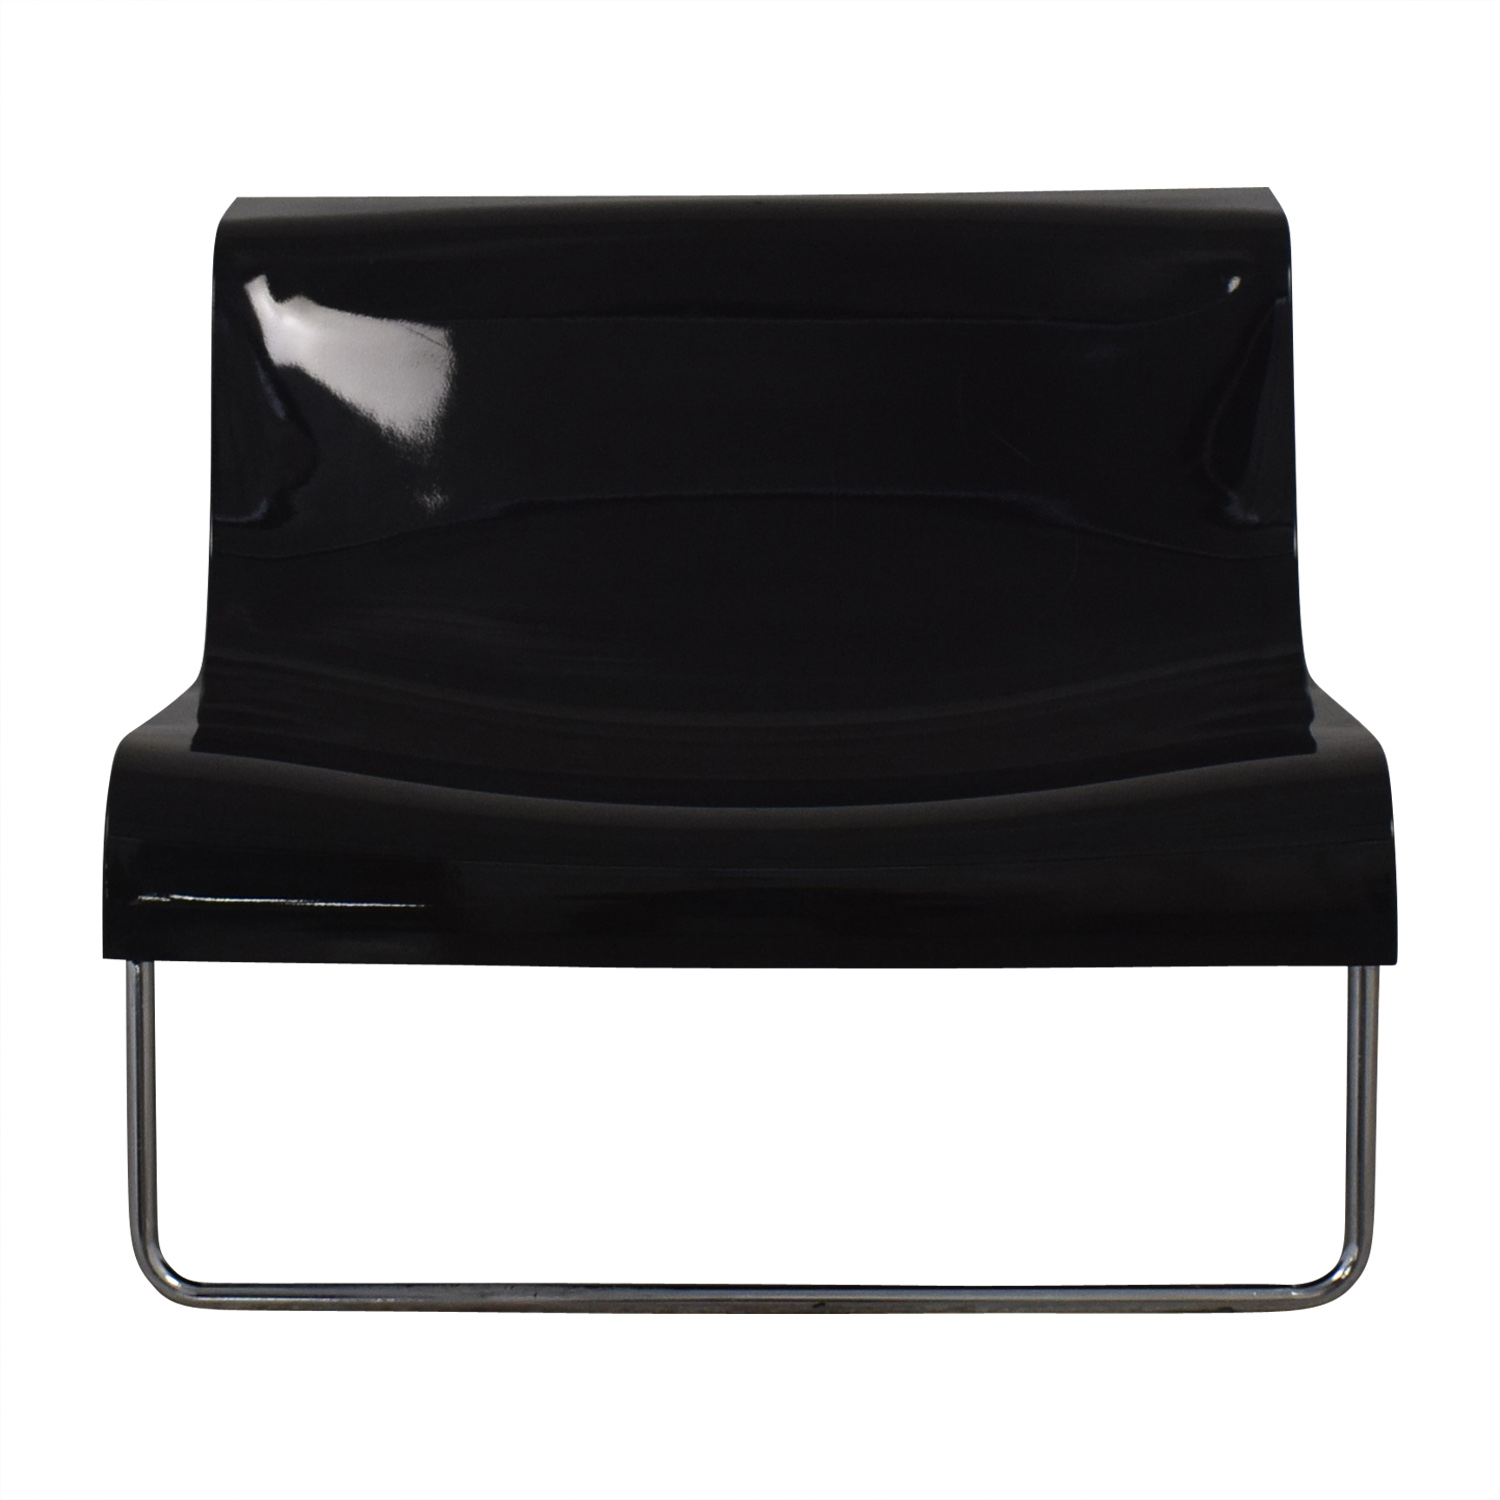 Kartell Kartell Form Chair by Piero Lissoni coupon